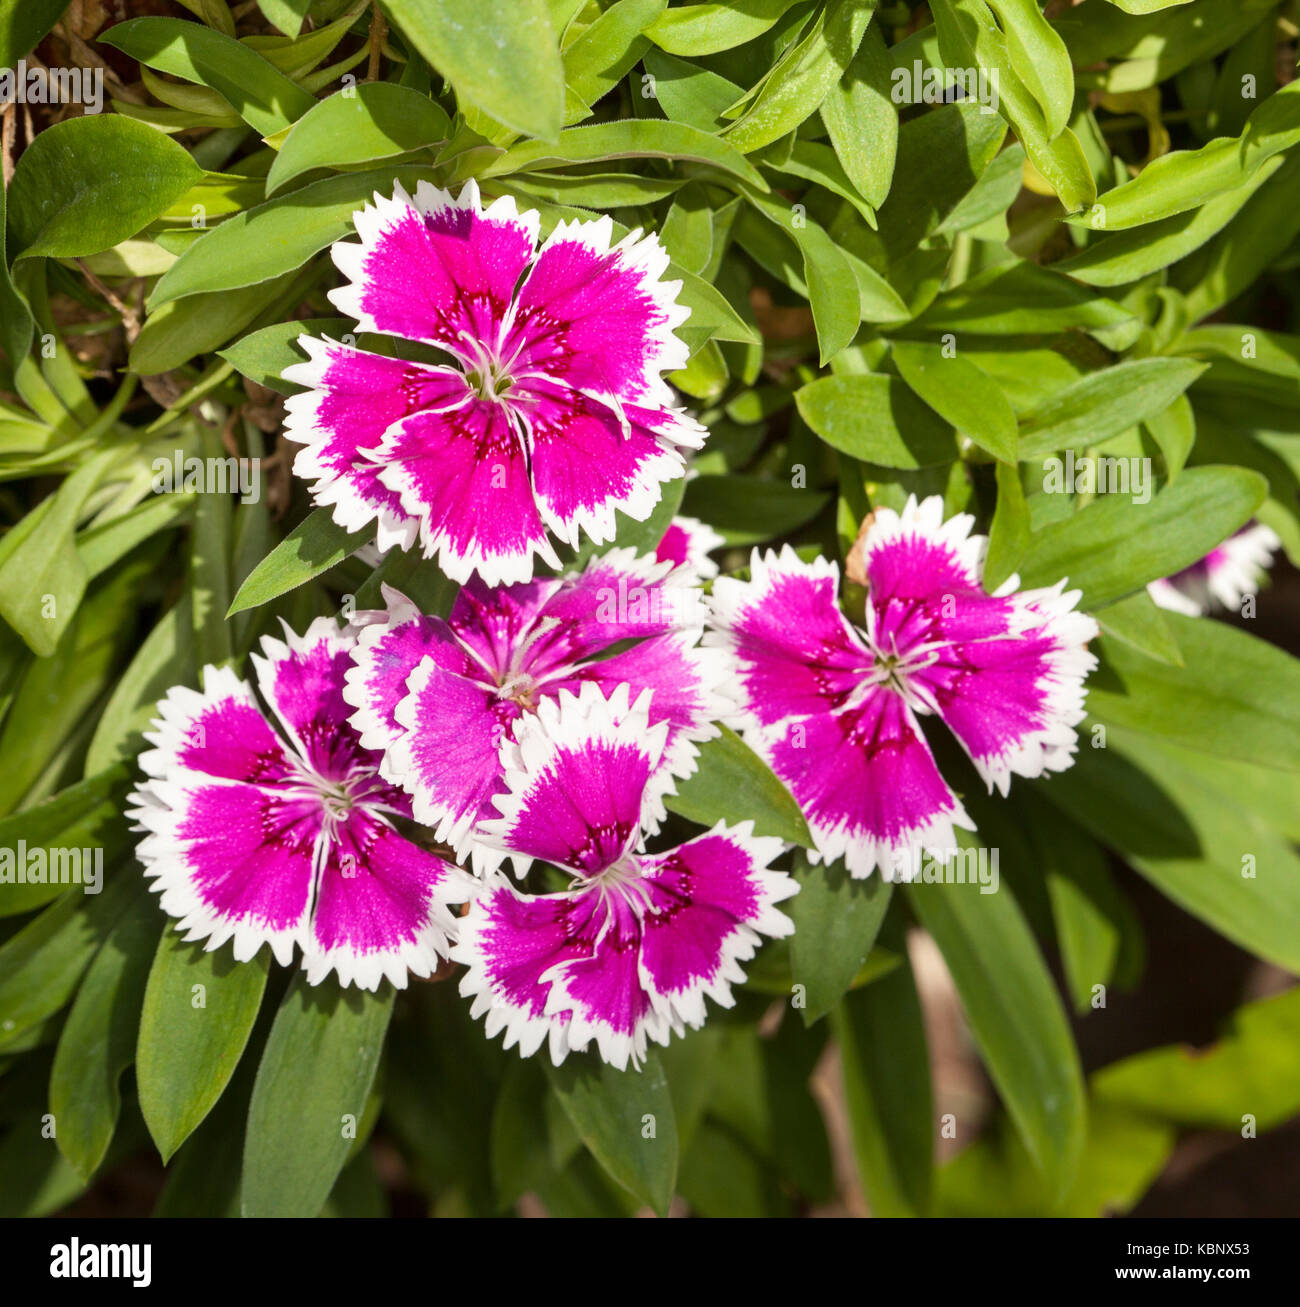 Cluster of magenta and white flowers of Dianthus barbatus - Stock Image